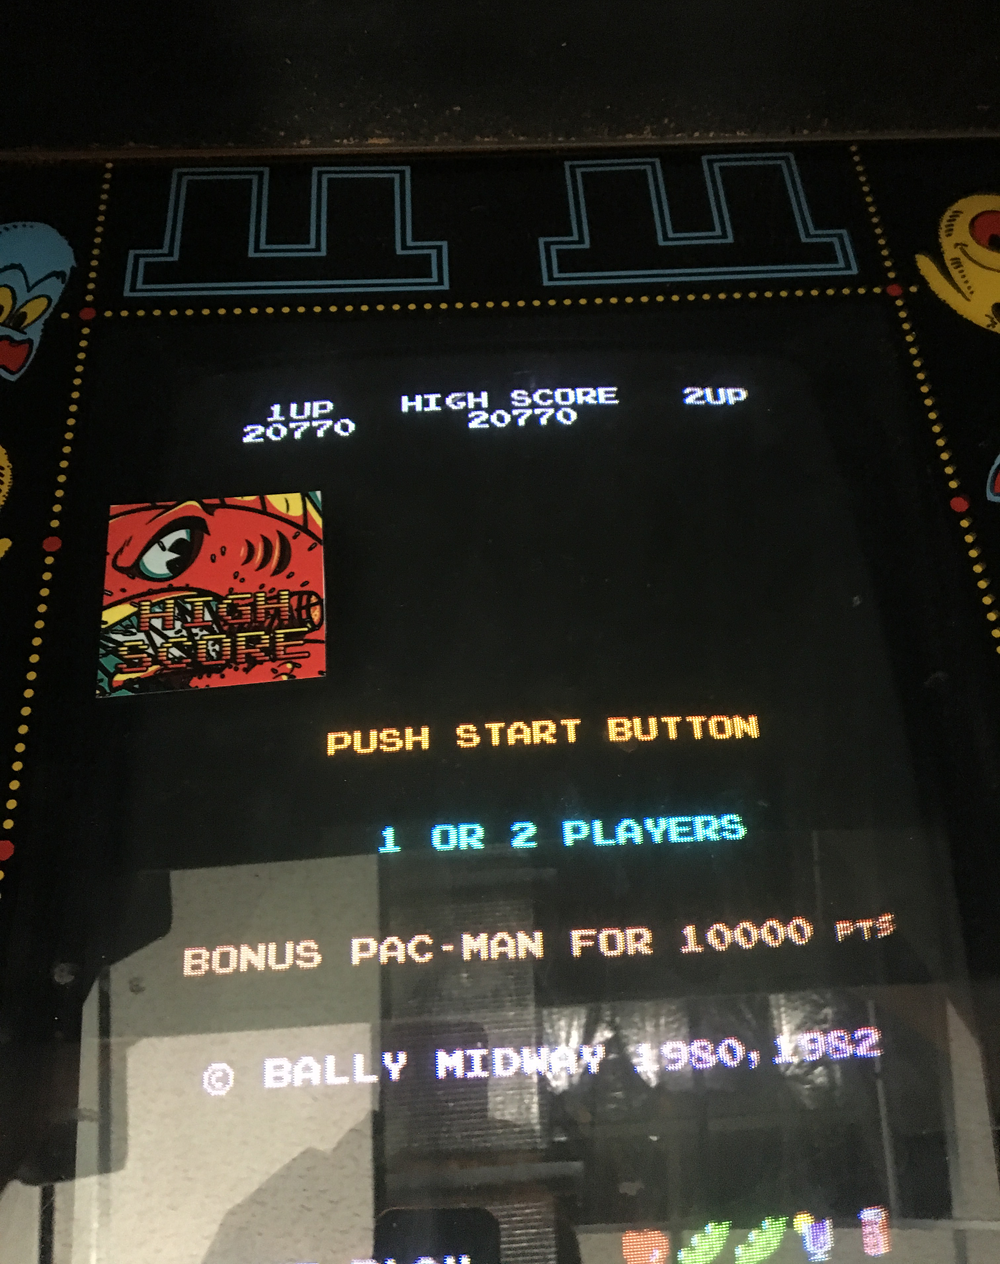 Pac-Man Plus 20,770 points